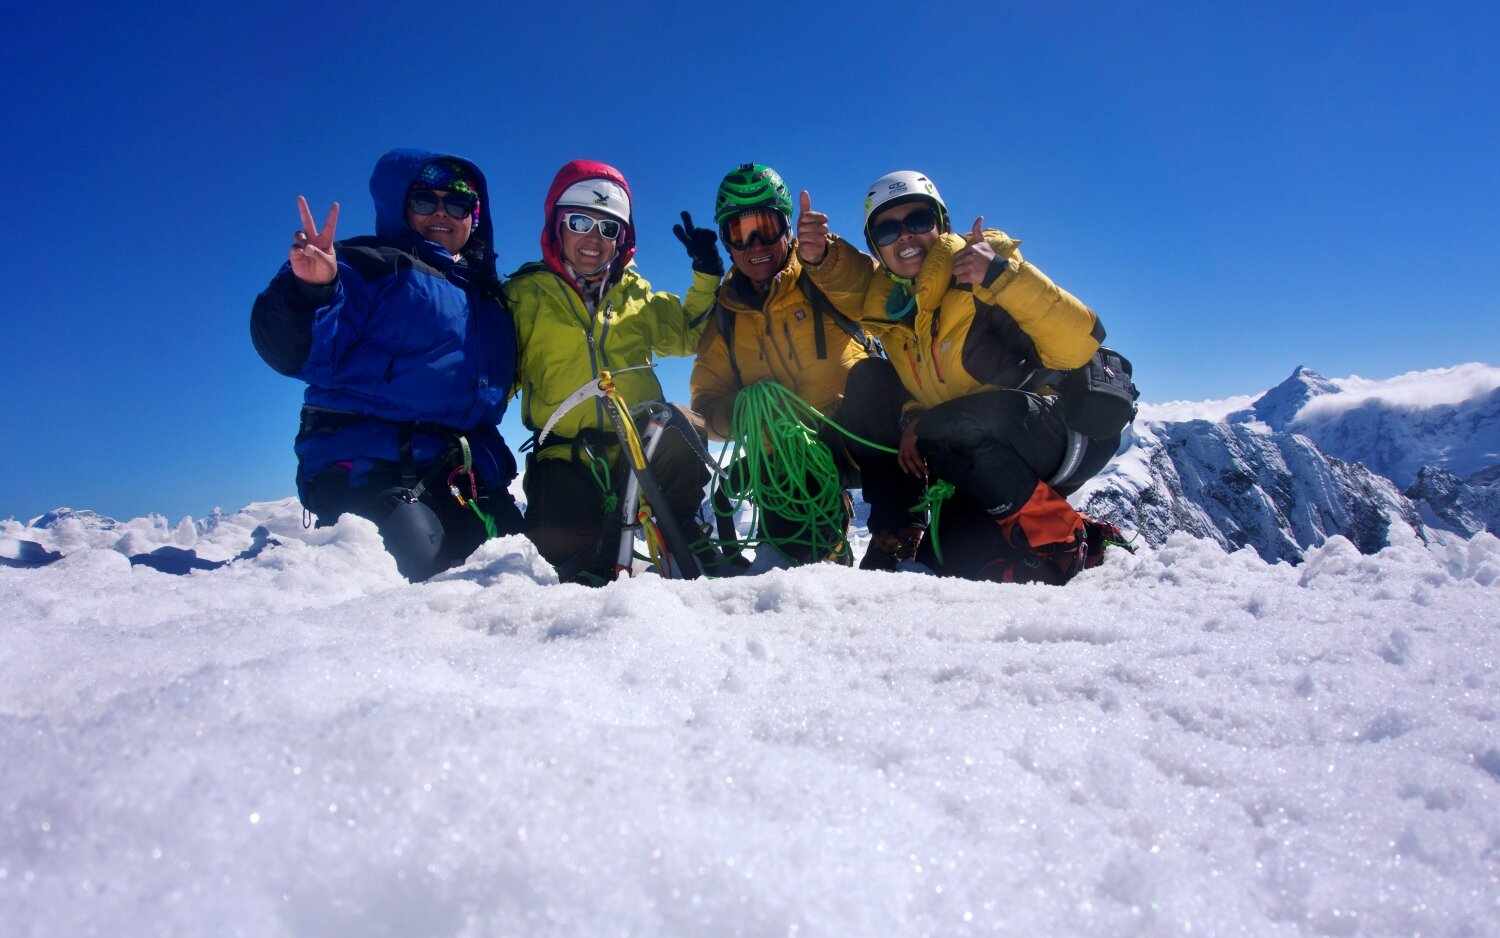 Mabel, Denis, Cesar and I on the summit of Vallunaraju at 5,686m a.s.l.